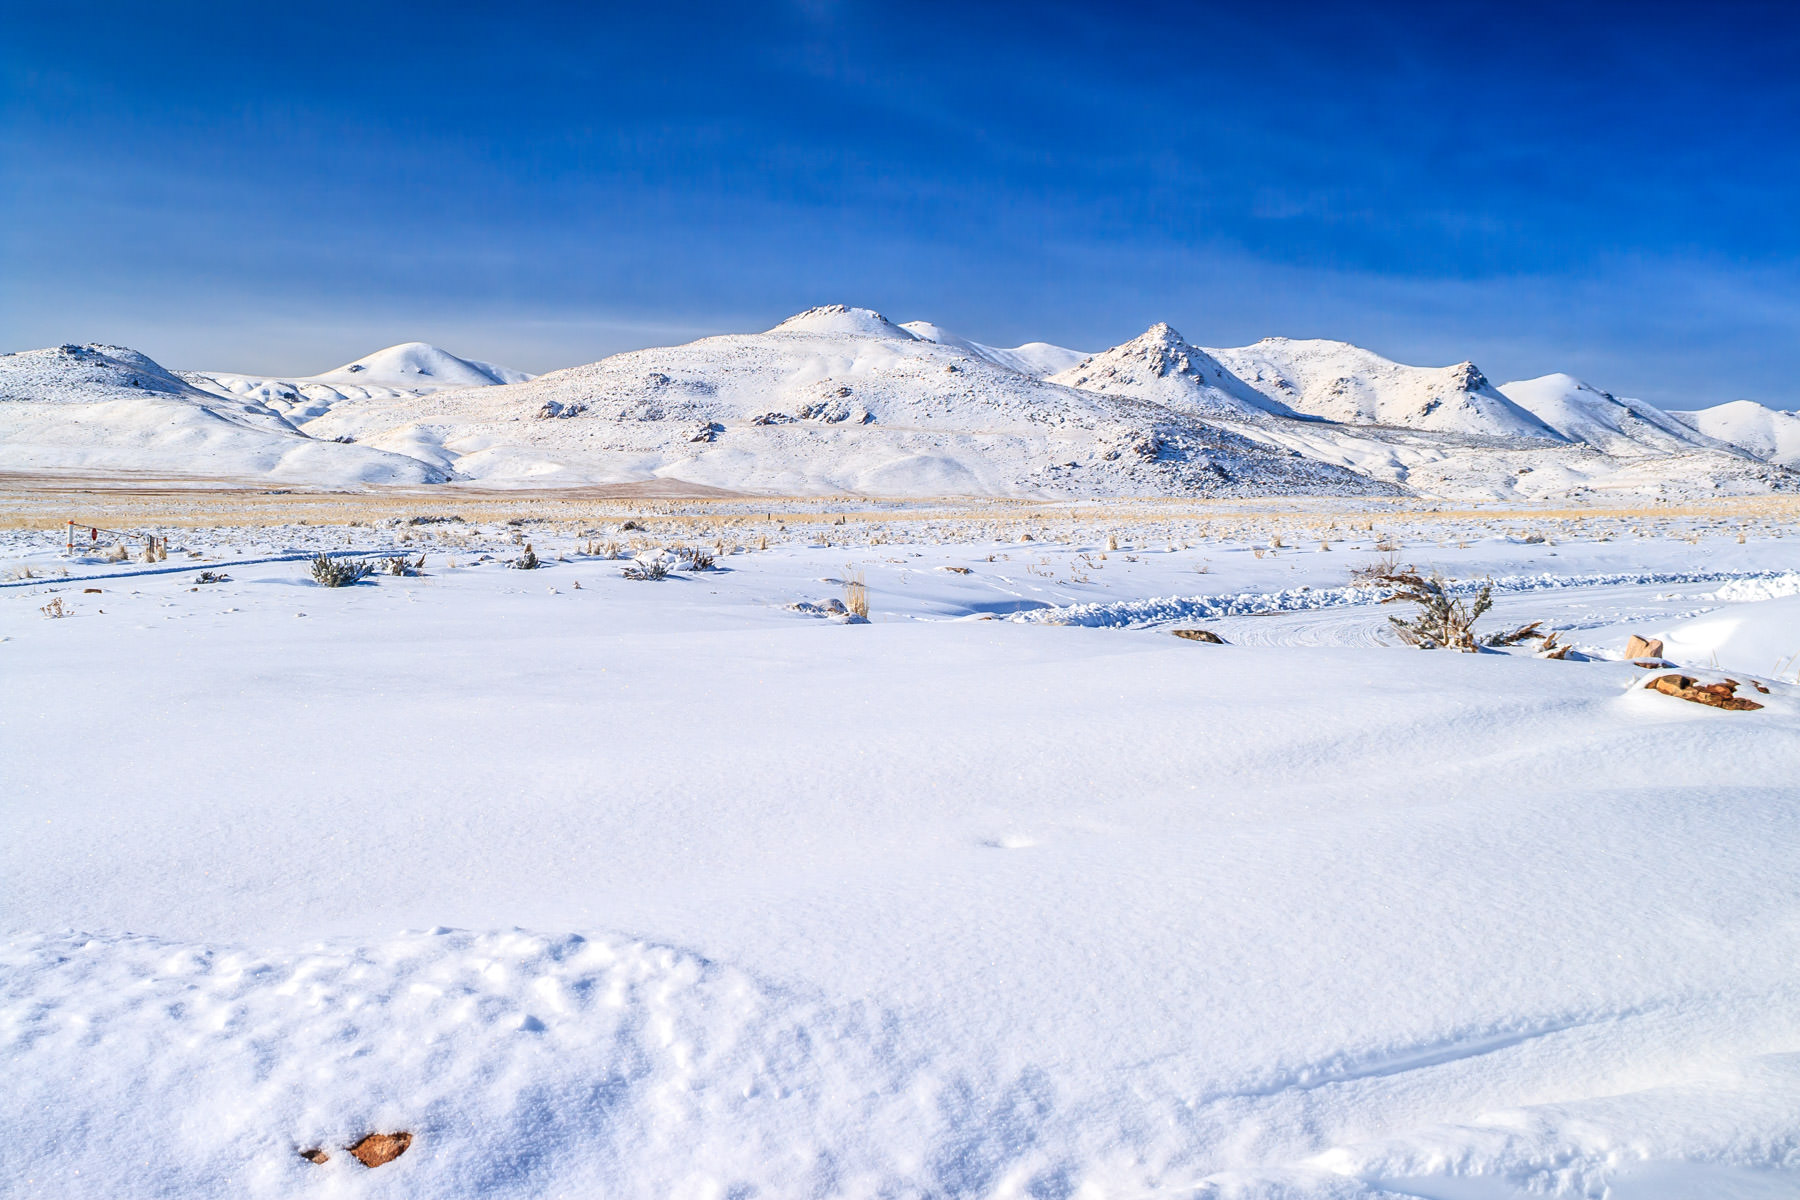 Snow covers the ground at Antelope Island State Park, Utah.